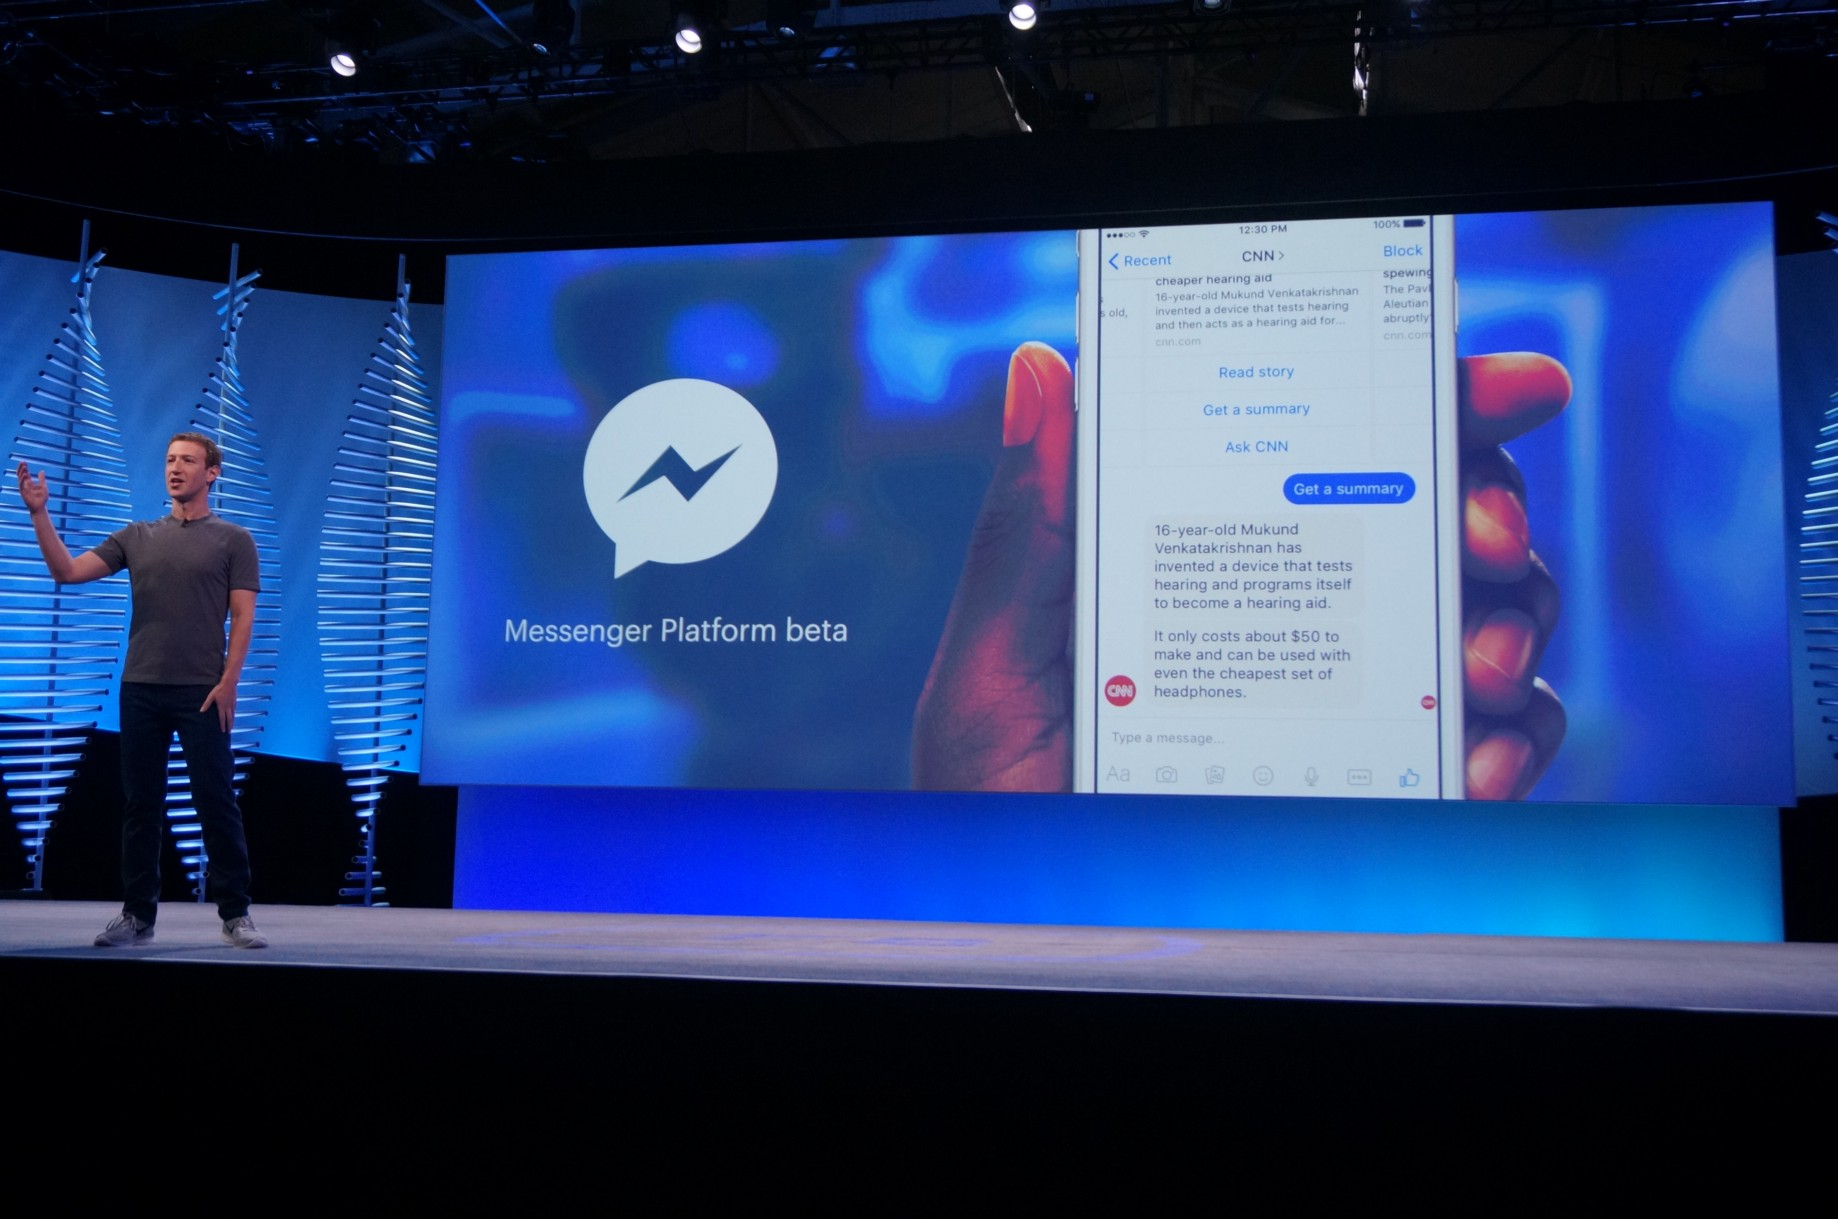 15 Things Missing From Facebook Messenger's Chatbot Platform